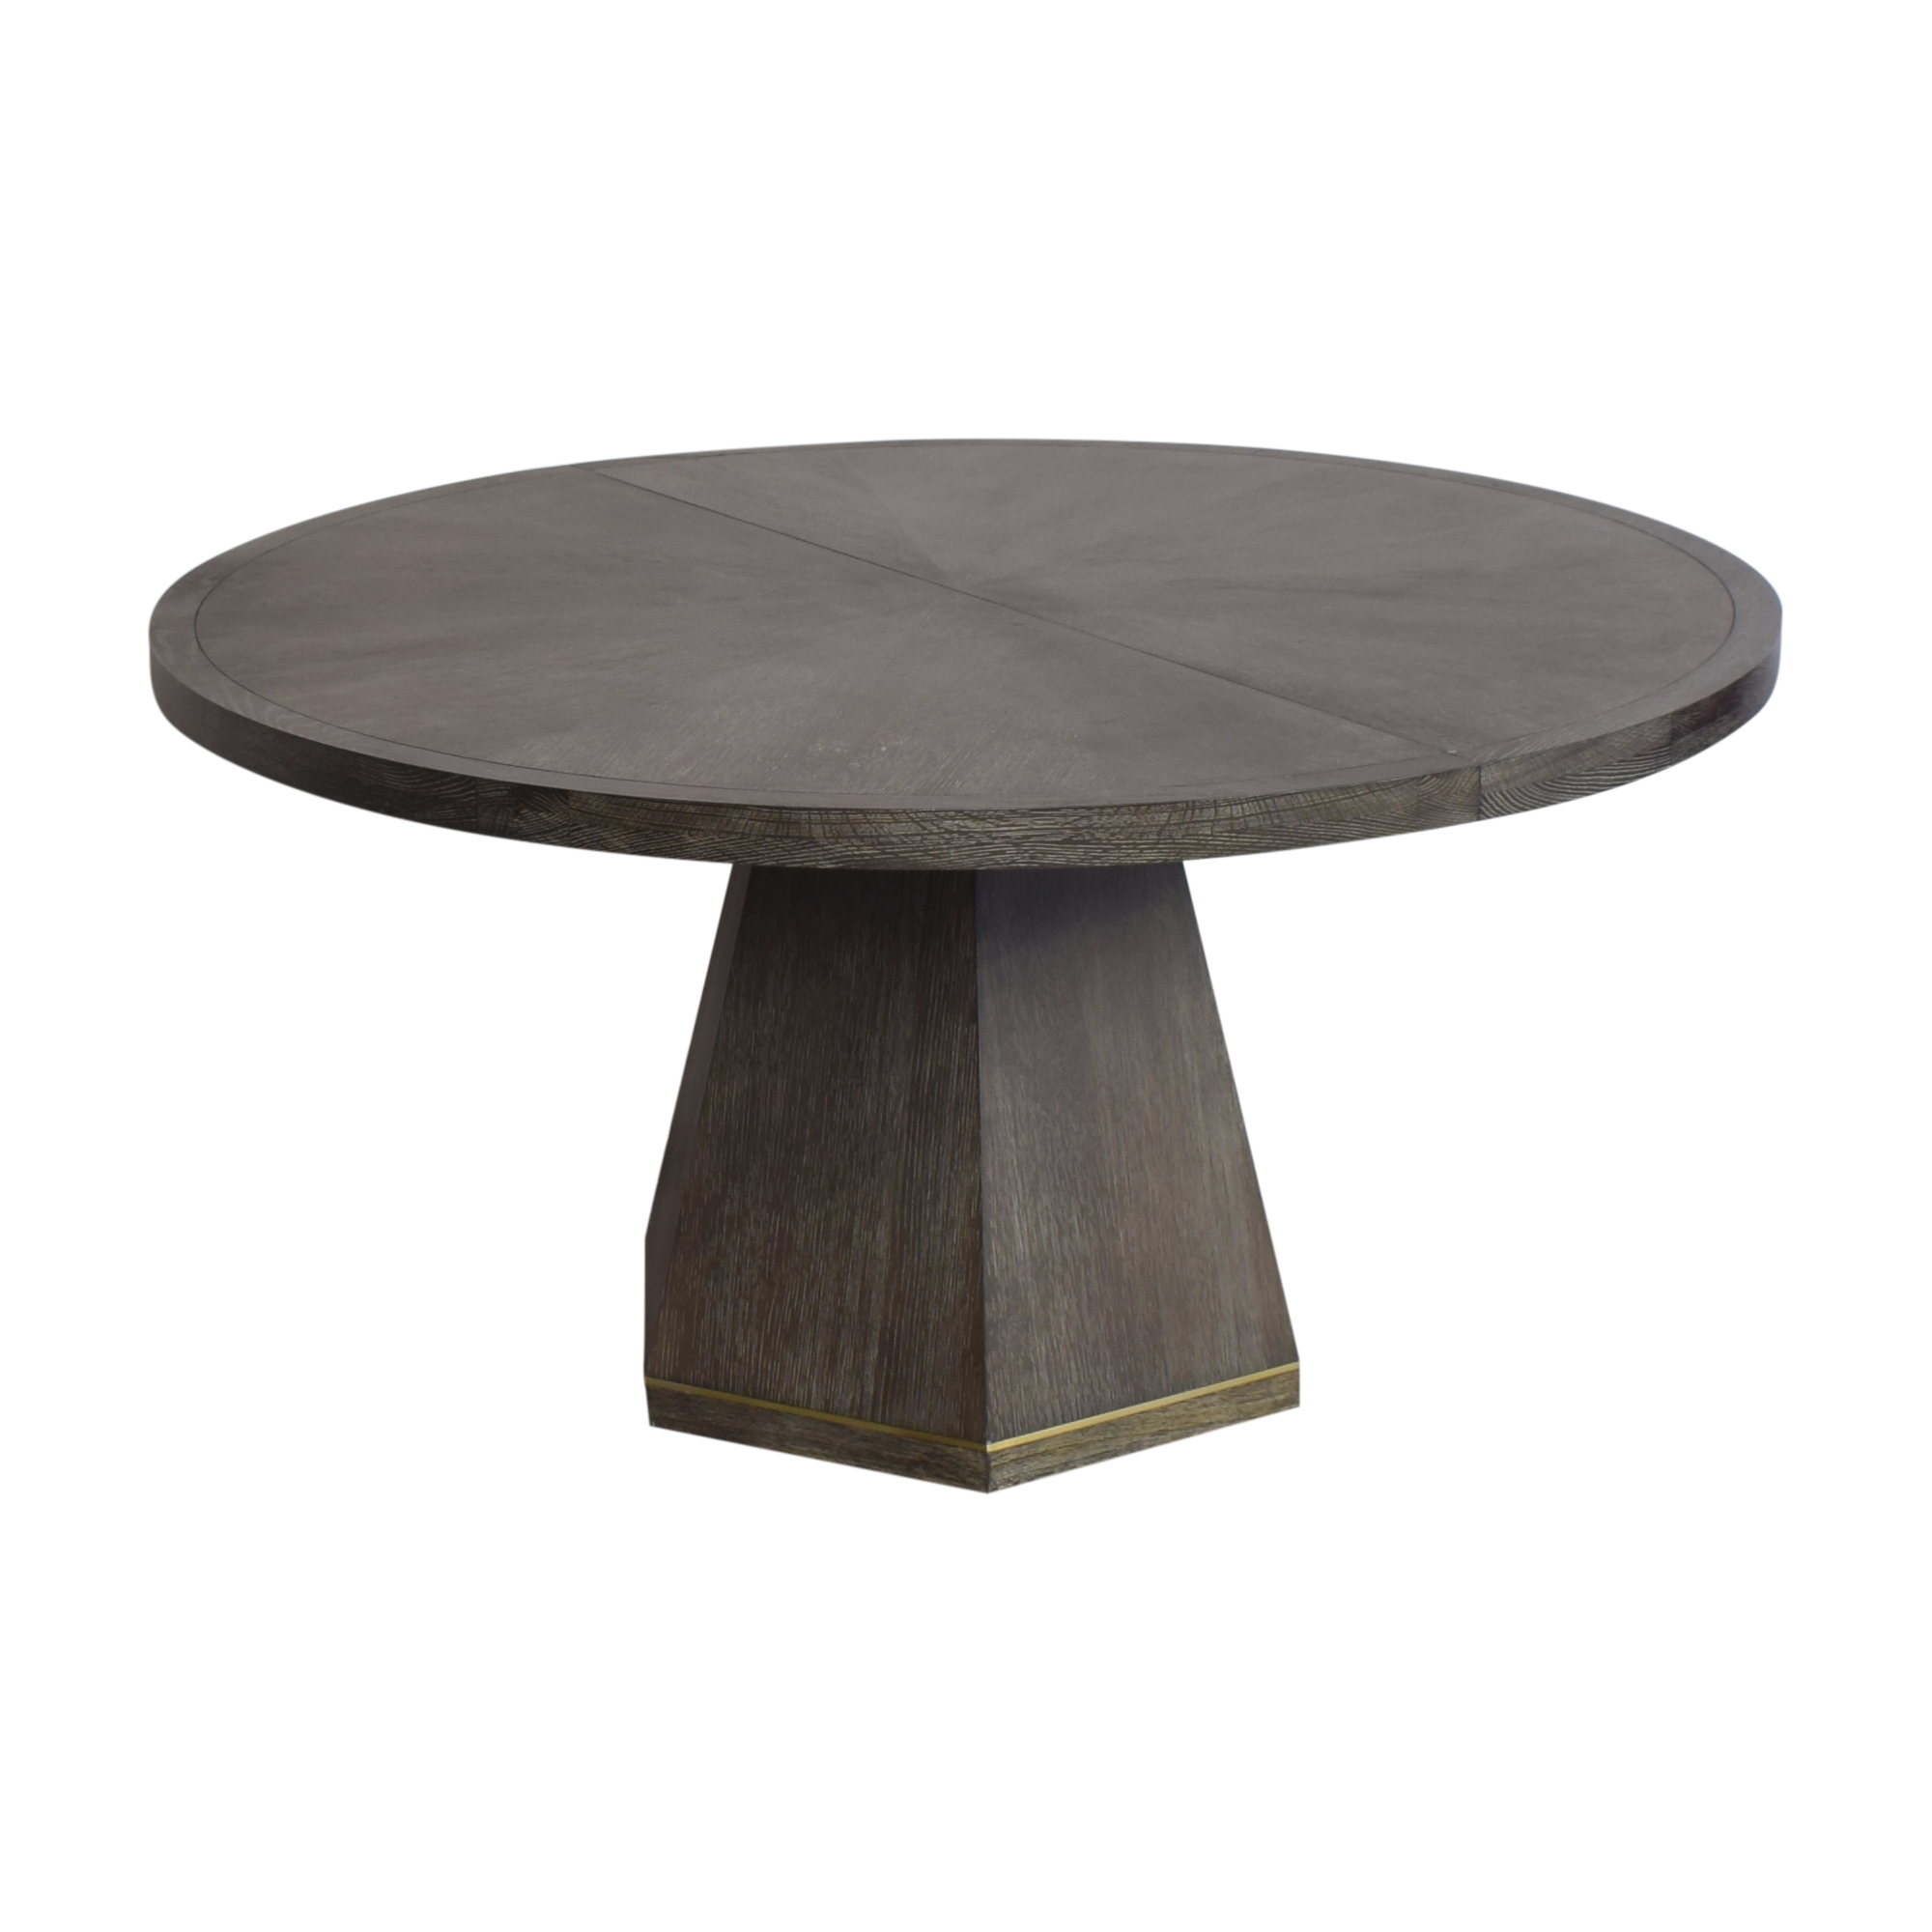 Mitchell Gold + Bob Williams Mitchell Gold + Bob Williams Emerson Round Dining Table nyc